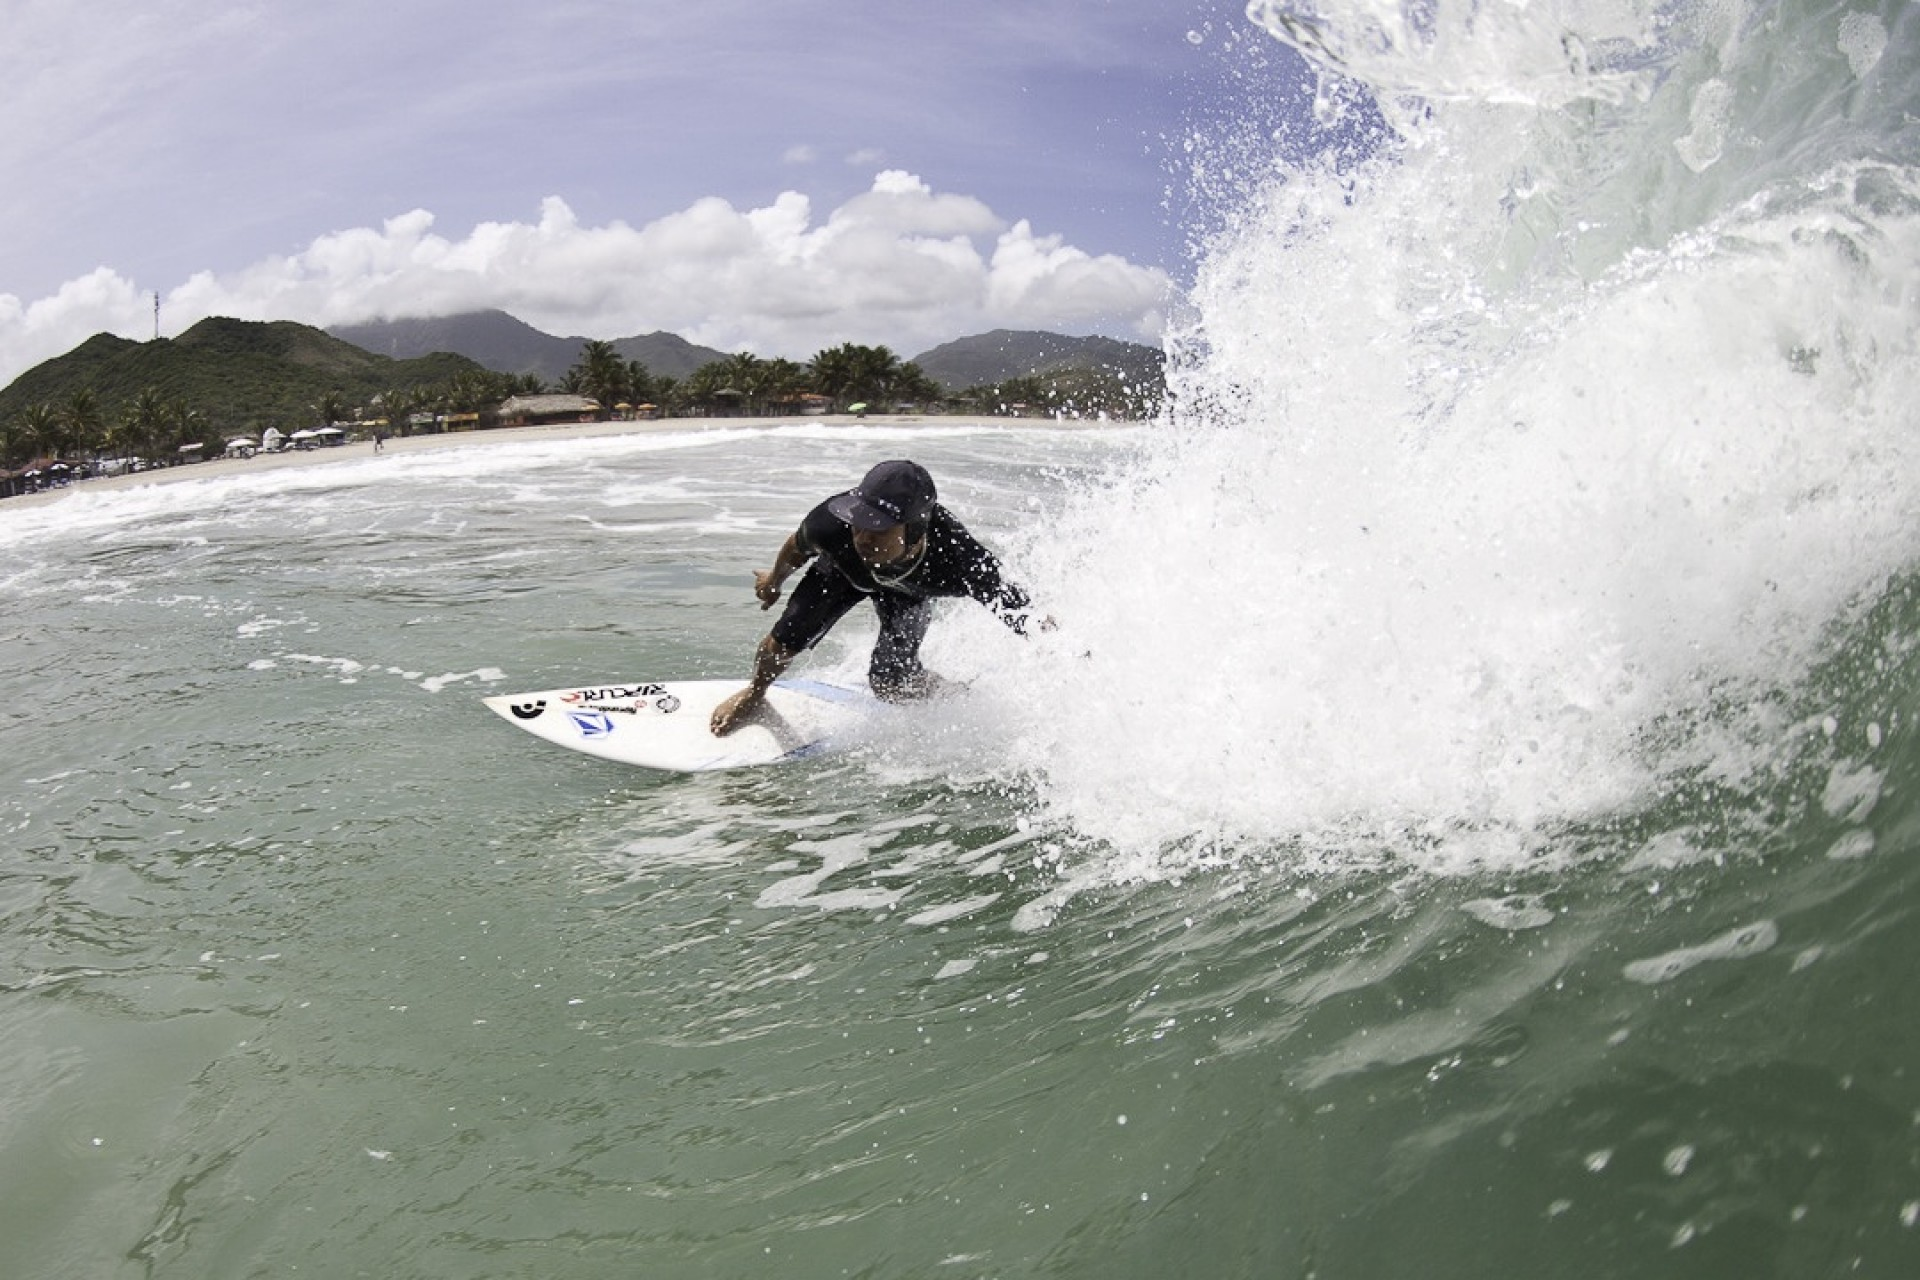 Mr.Willy Curbelo's photo of Playa Parguito